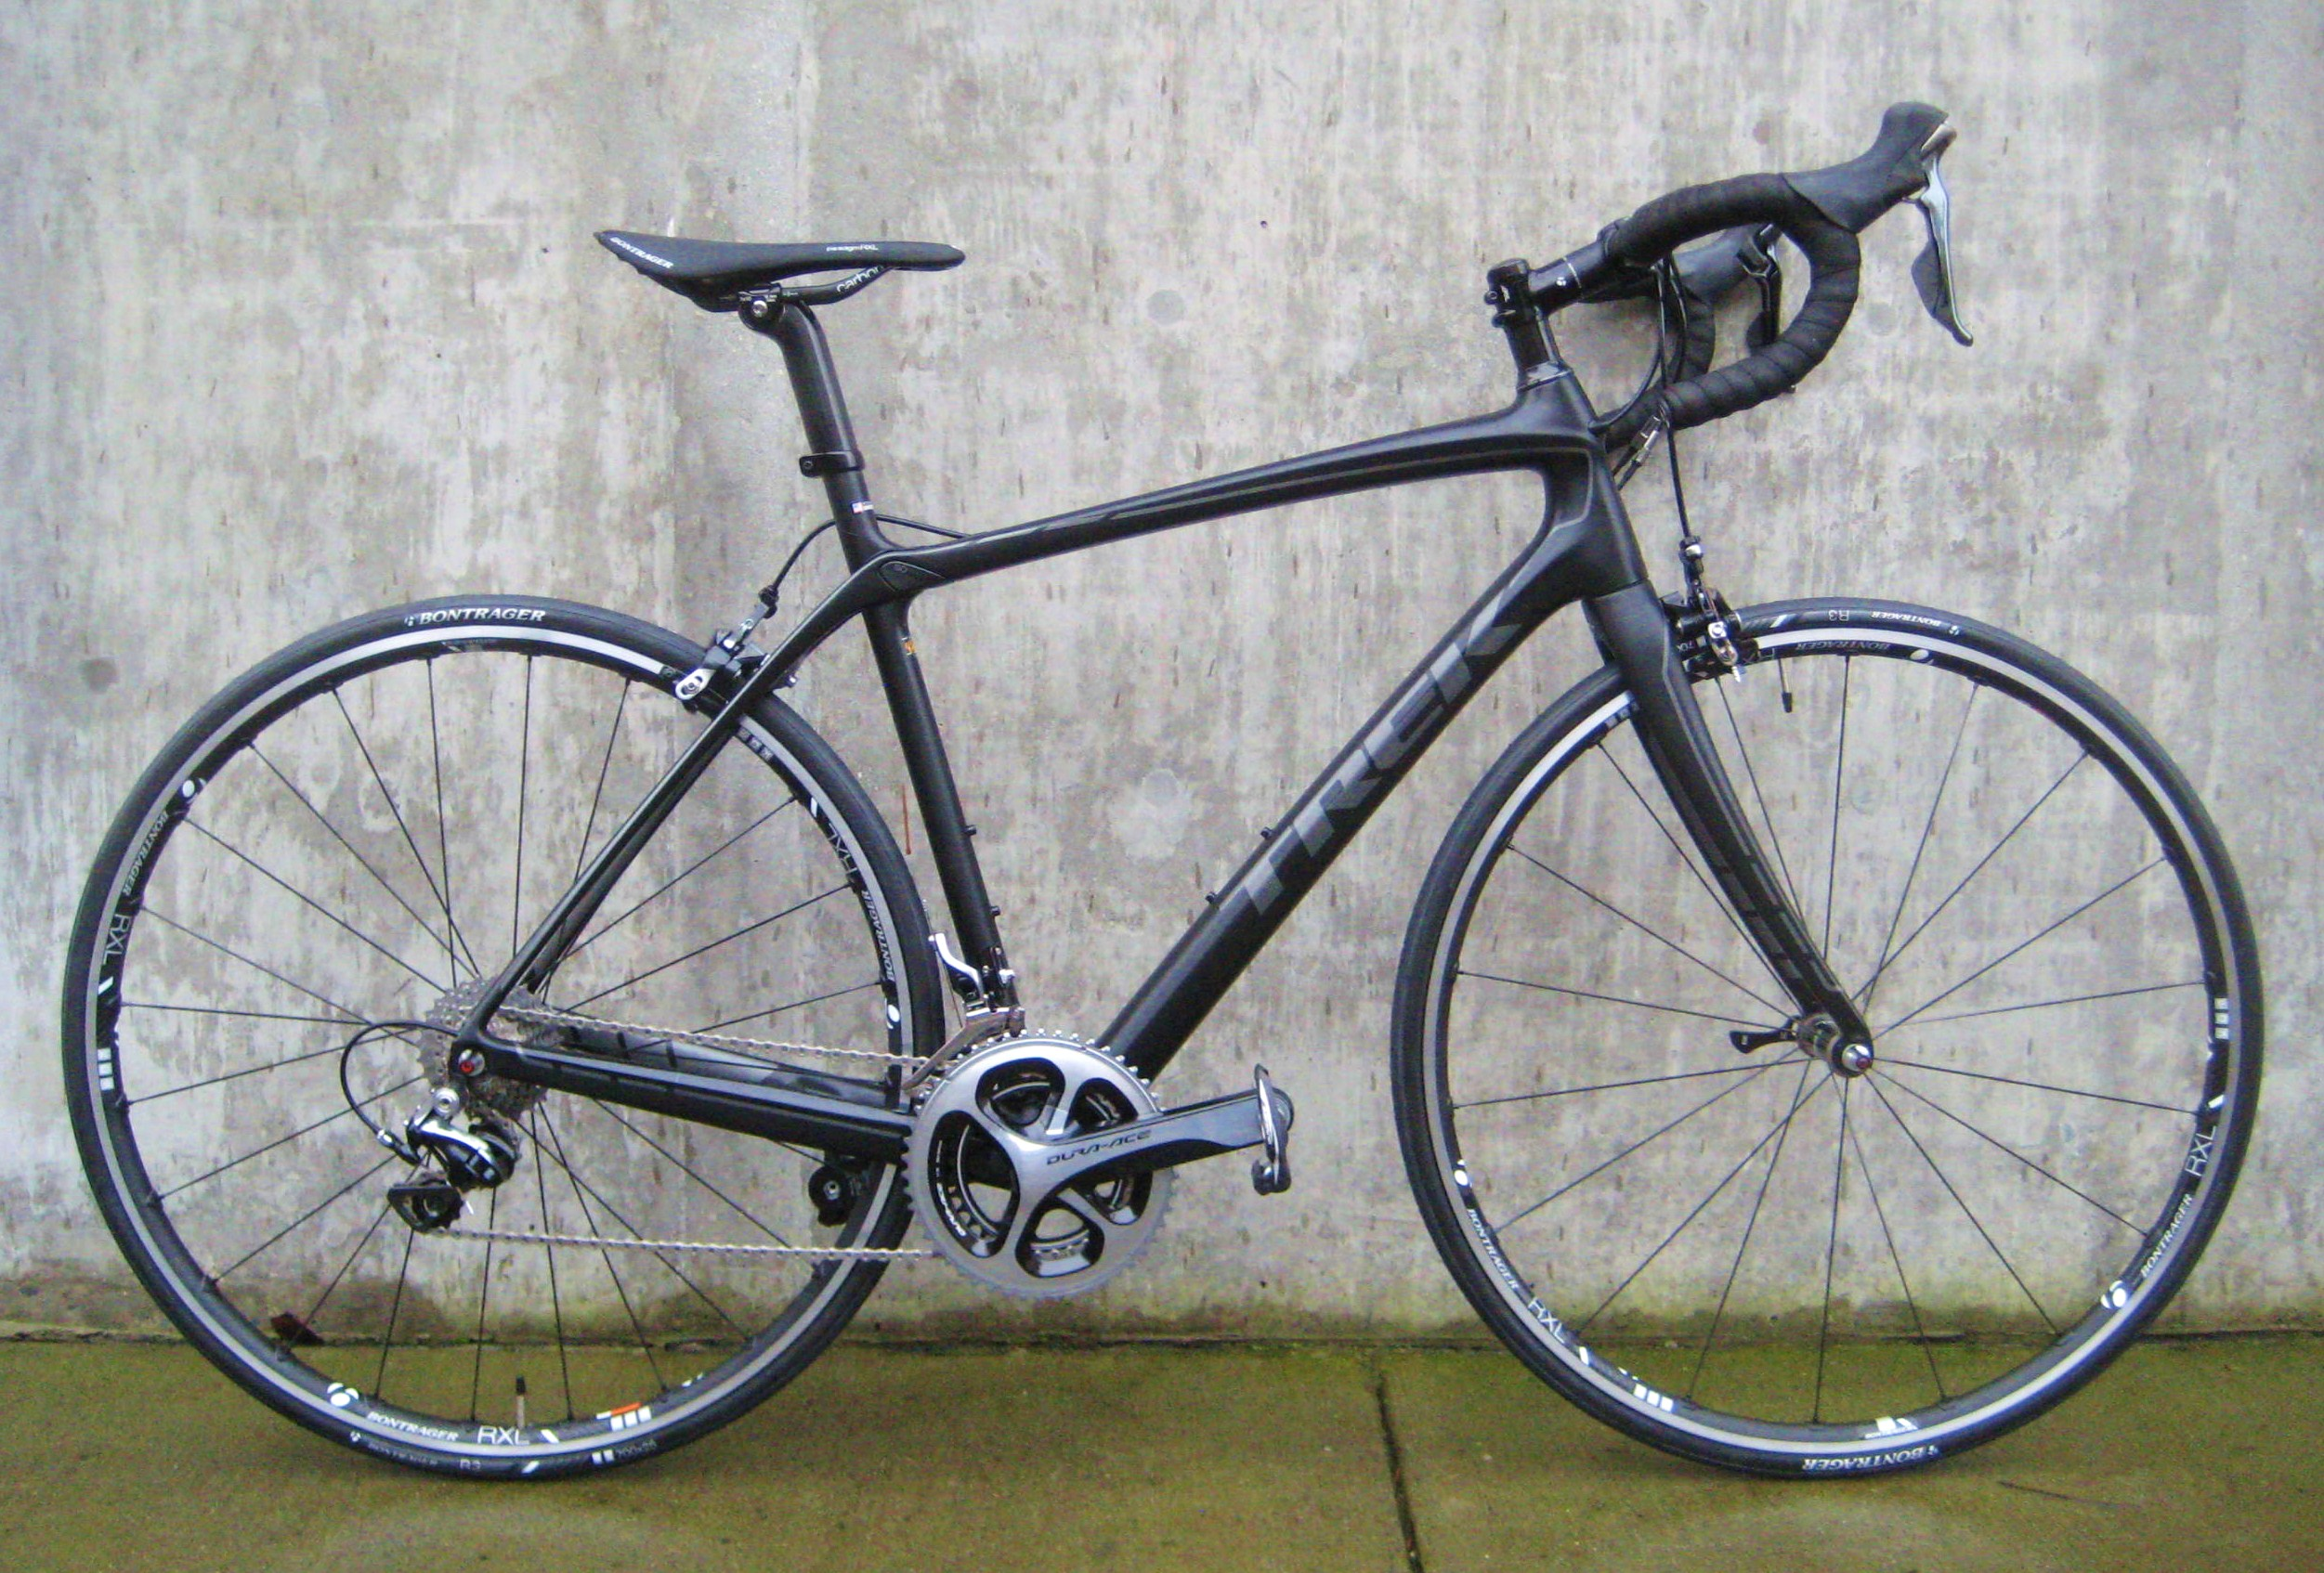 Trek Domane road bikes for sale at Classic Cycle | Classic ...